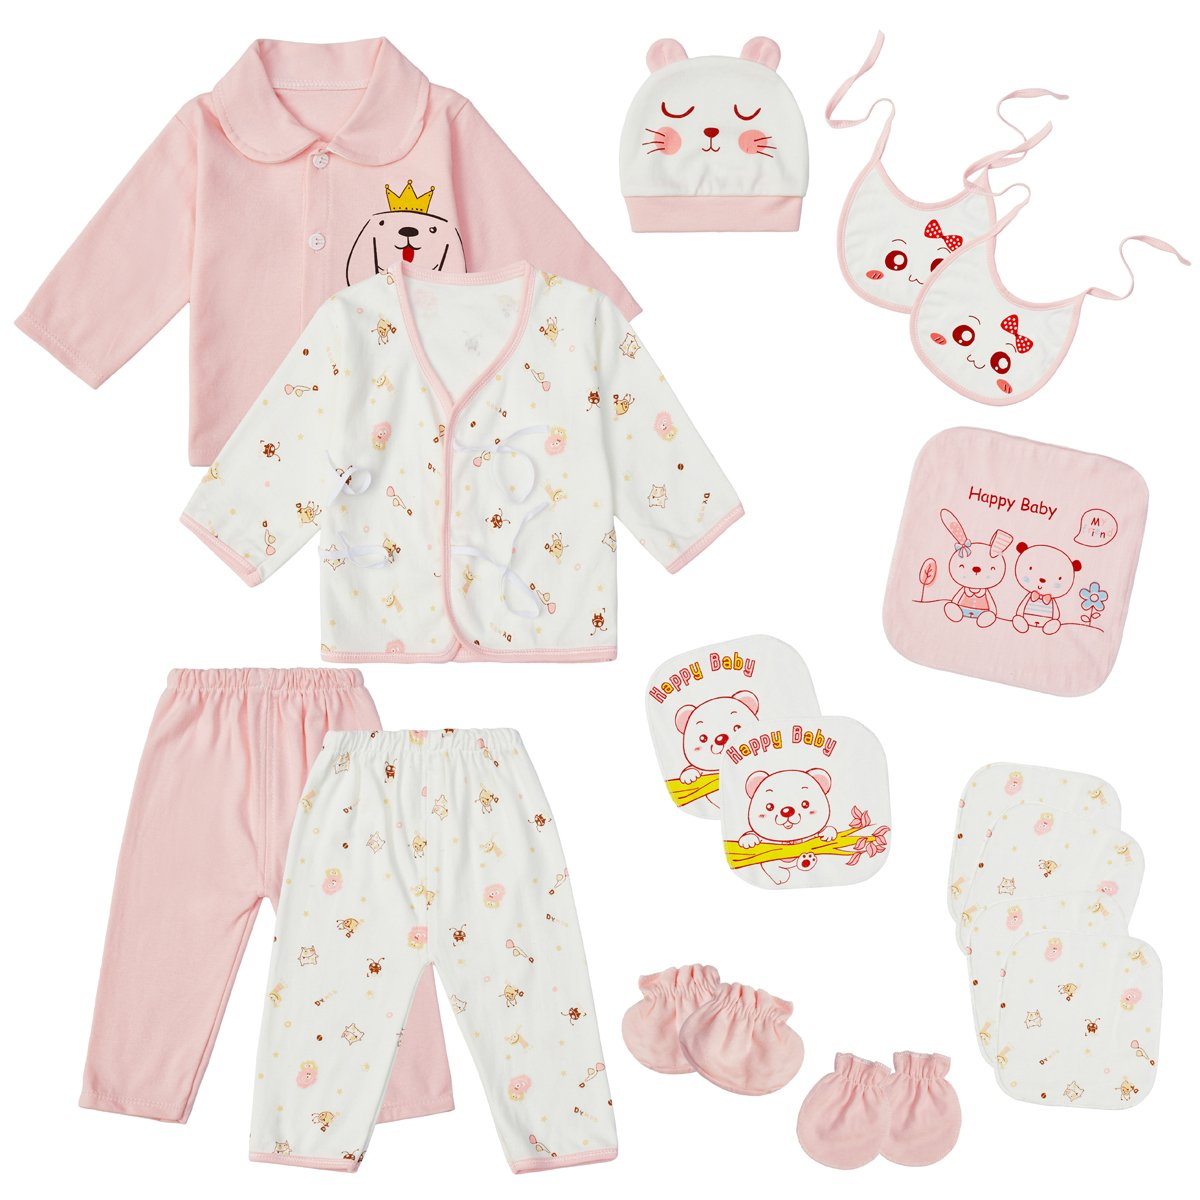 7f700224d Newborn Clothes Infant Layette Set 0-3 Months Baby Girl Boy Outfits ...